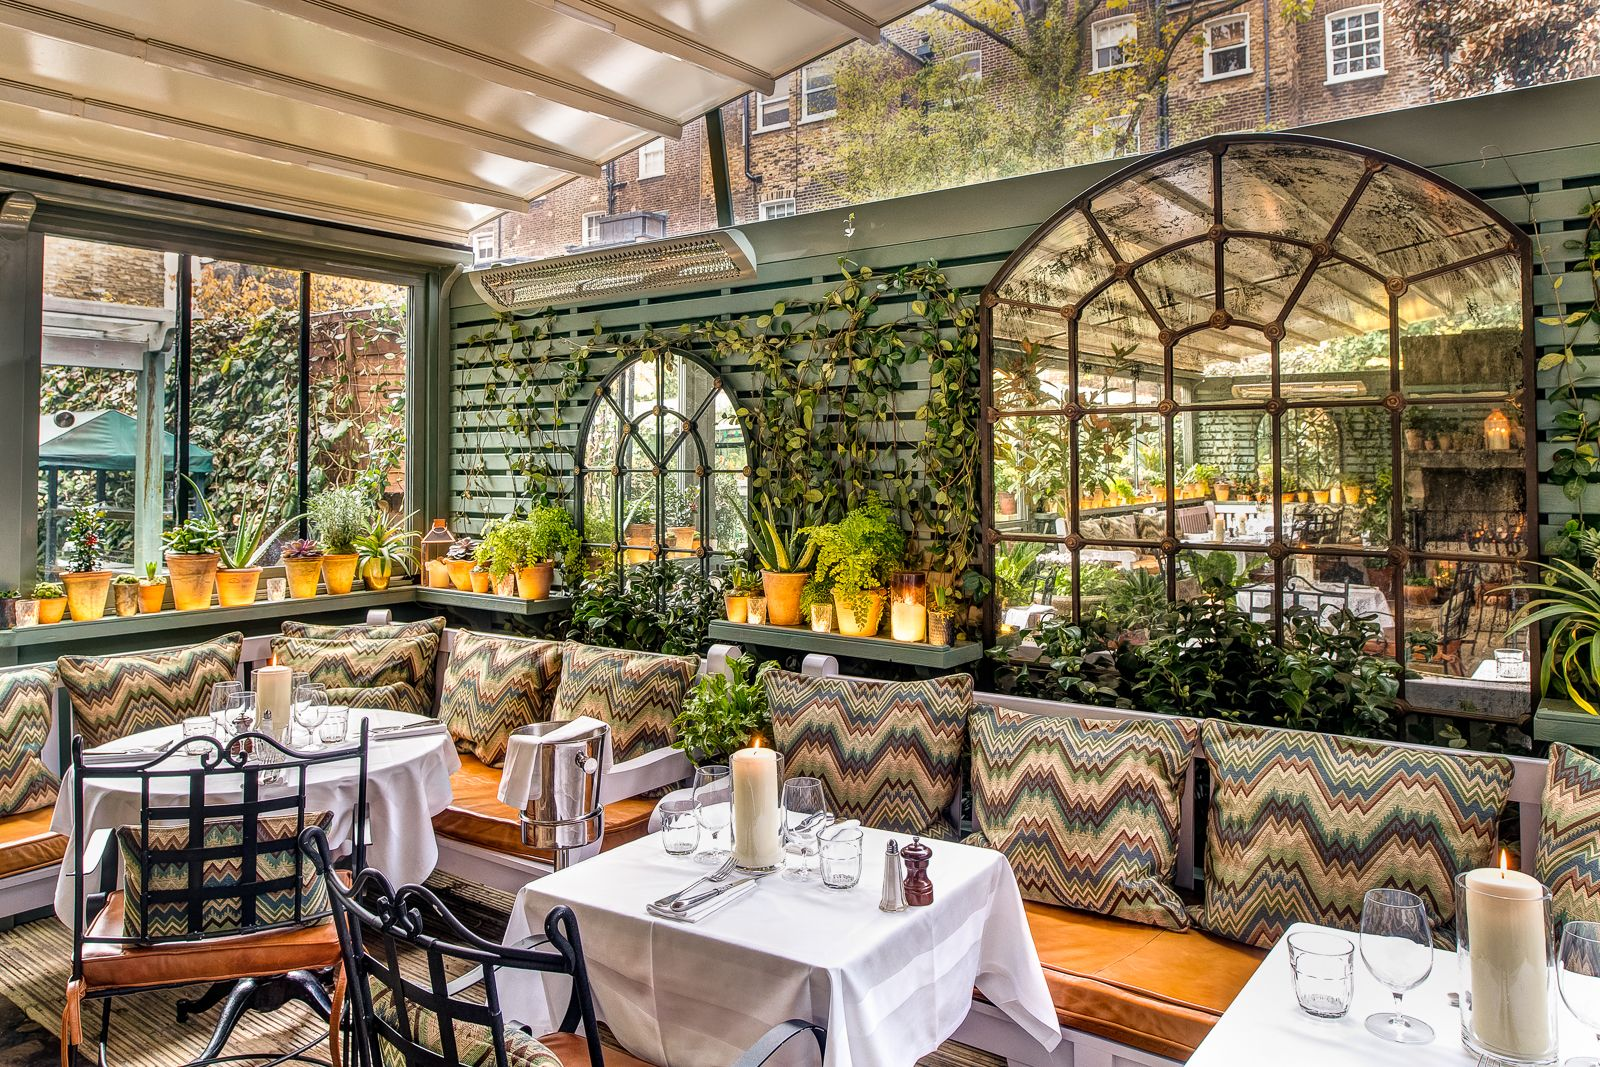 The Ivy Chelsea Garden, London UK. X Cafe / Restaurant I